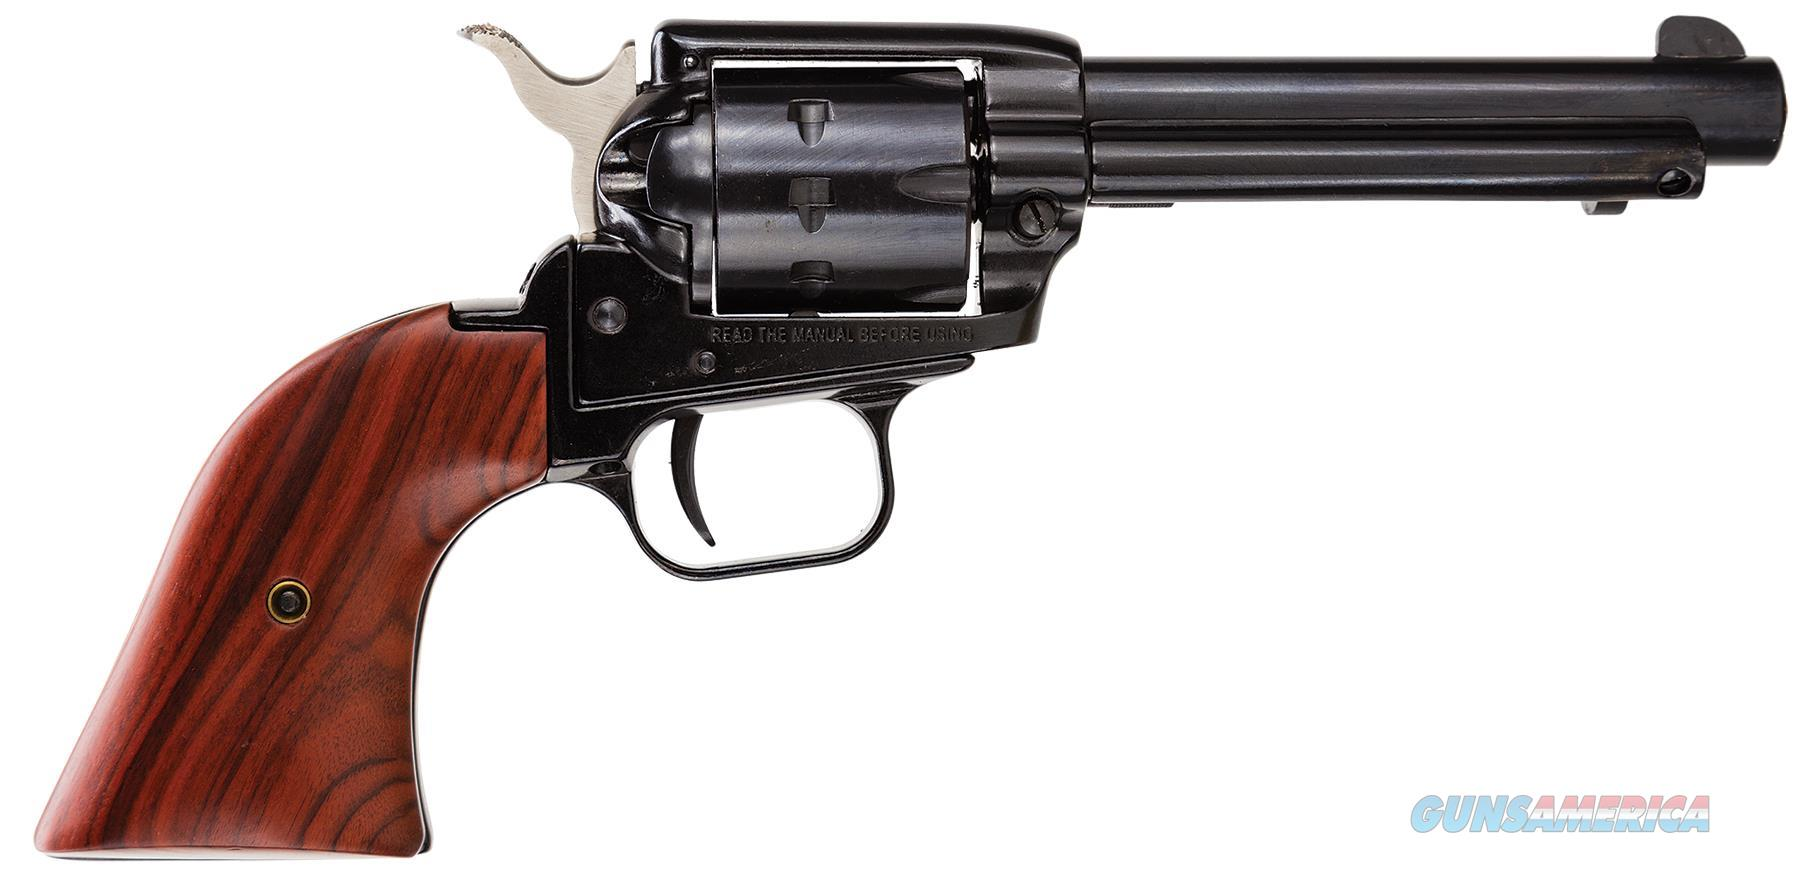 """Heritage Mfg Rr22999mb4 Rough Rider Small Bore Single 22 Long Rifle 4.75"""" 9 Cocobolo Blued RR22999MB4  Guns > Pistols > Heritage"""